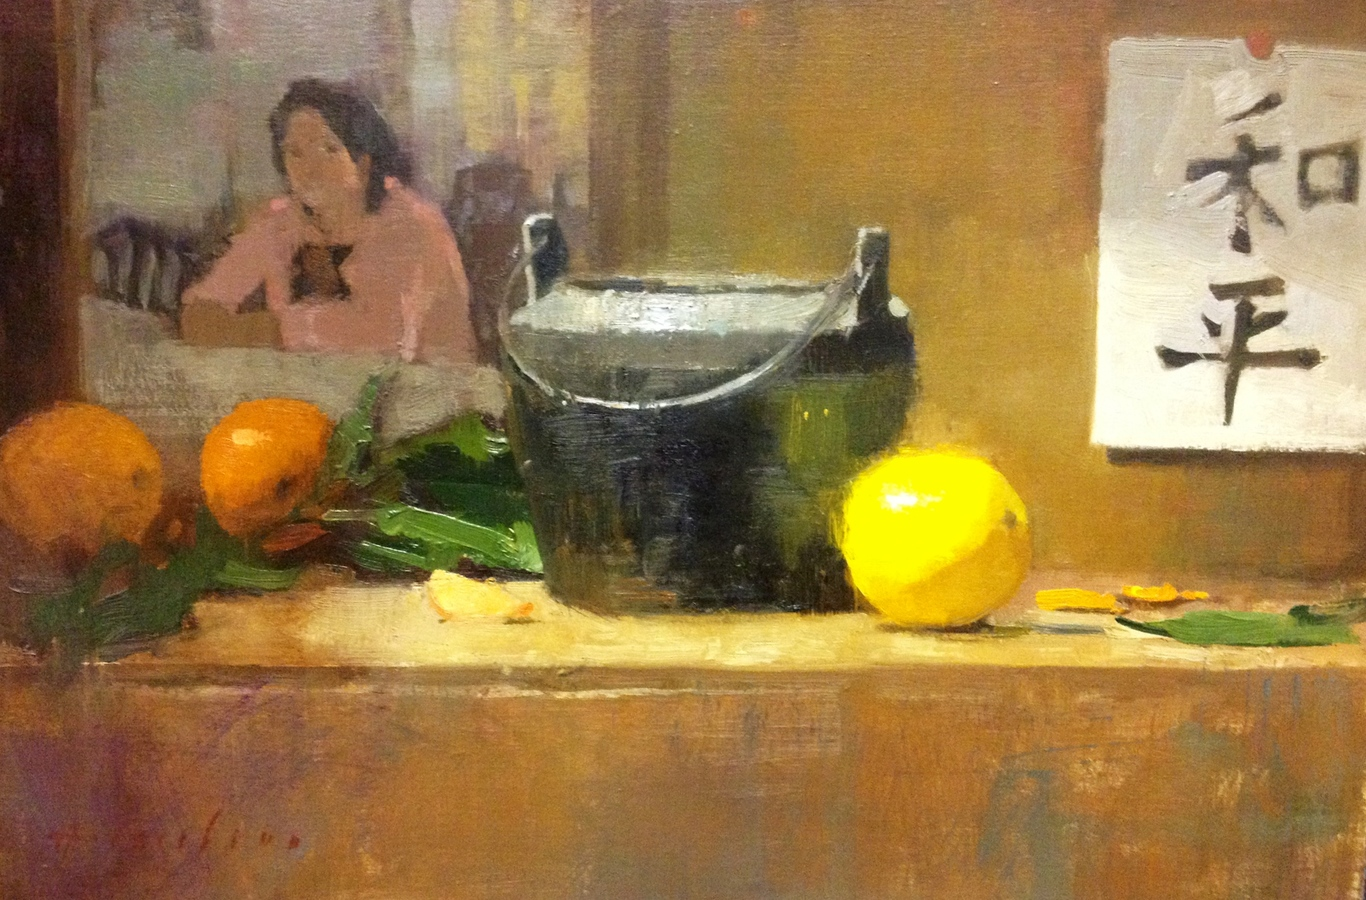 Still Life/Interiors January